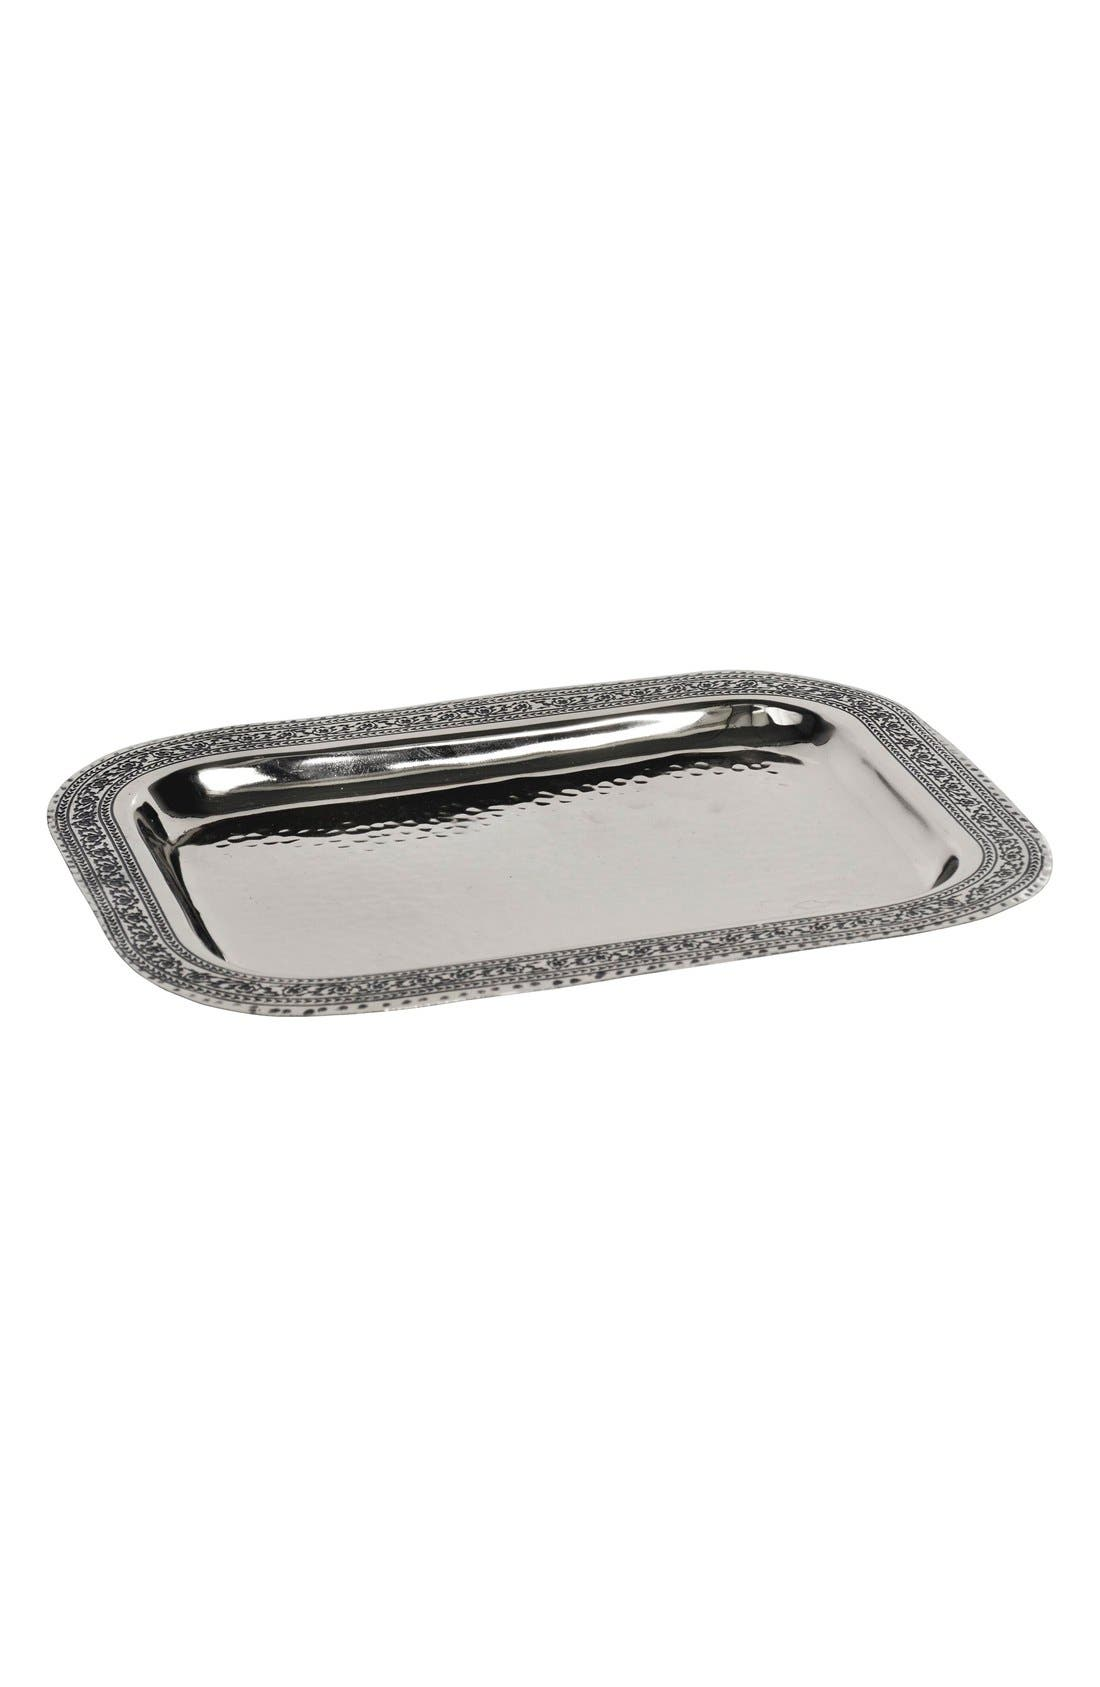 'Taxila' Tray,                         Main,                         color, 040